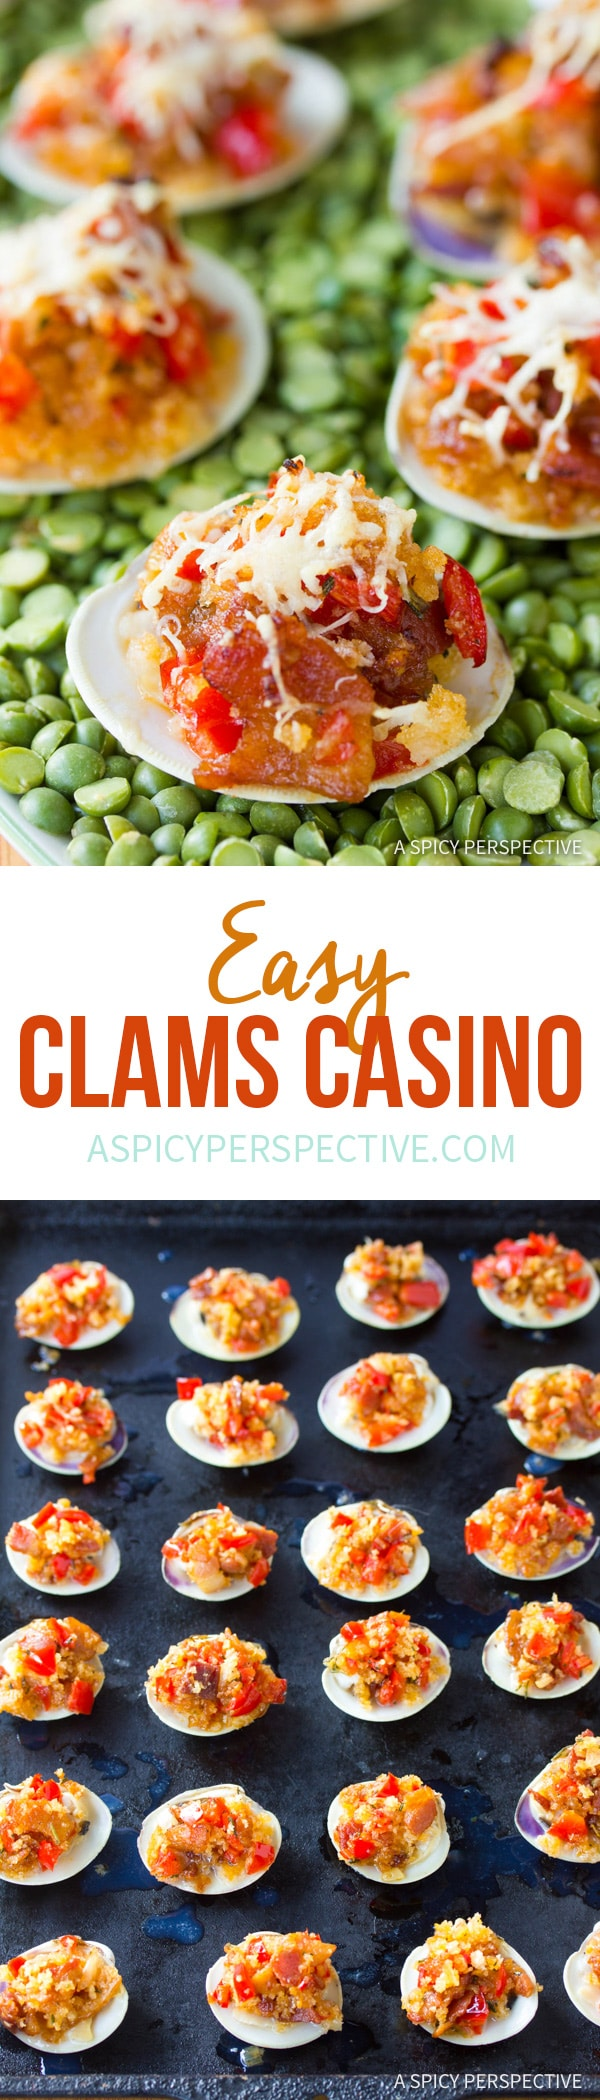 Perfect Clams Casino Recipe | ASpicyPerspective.com